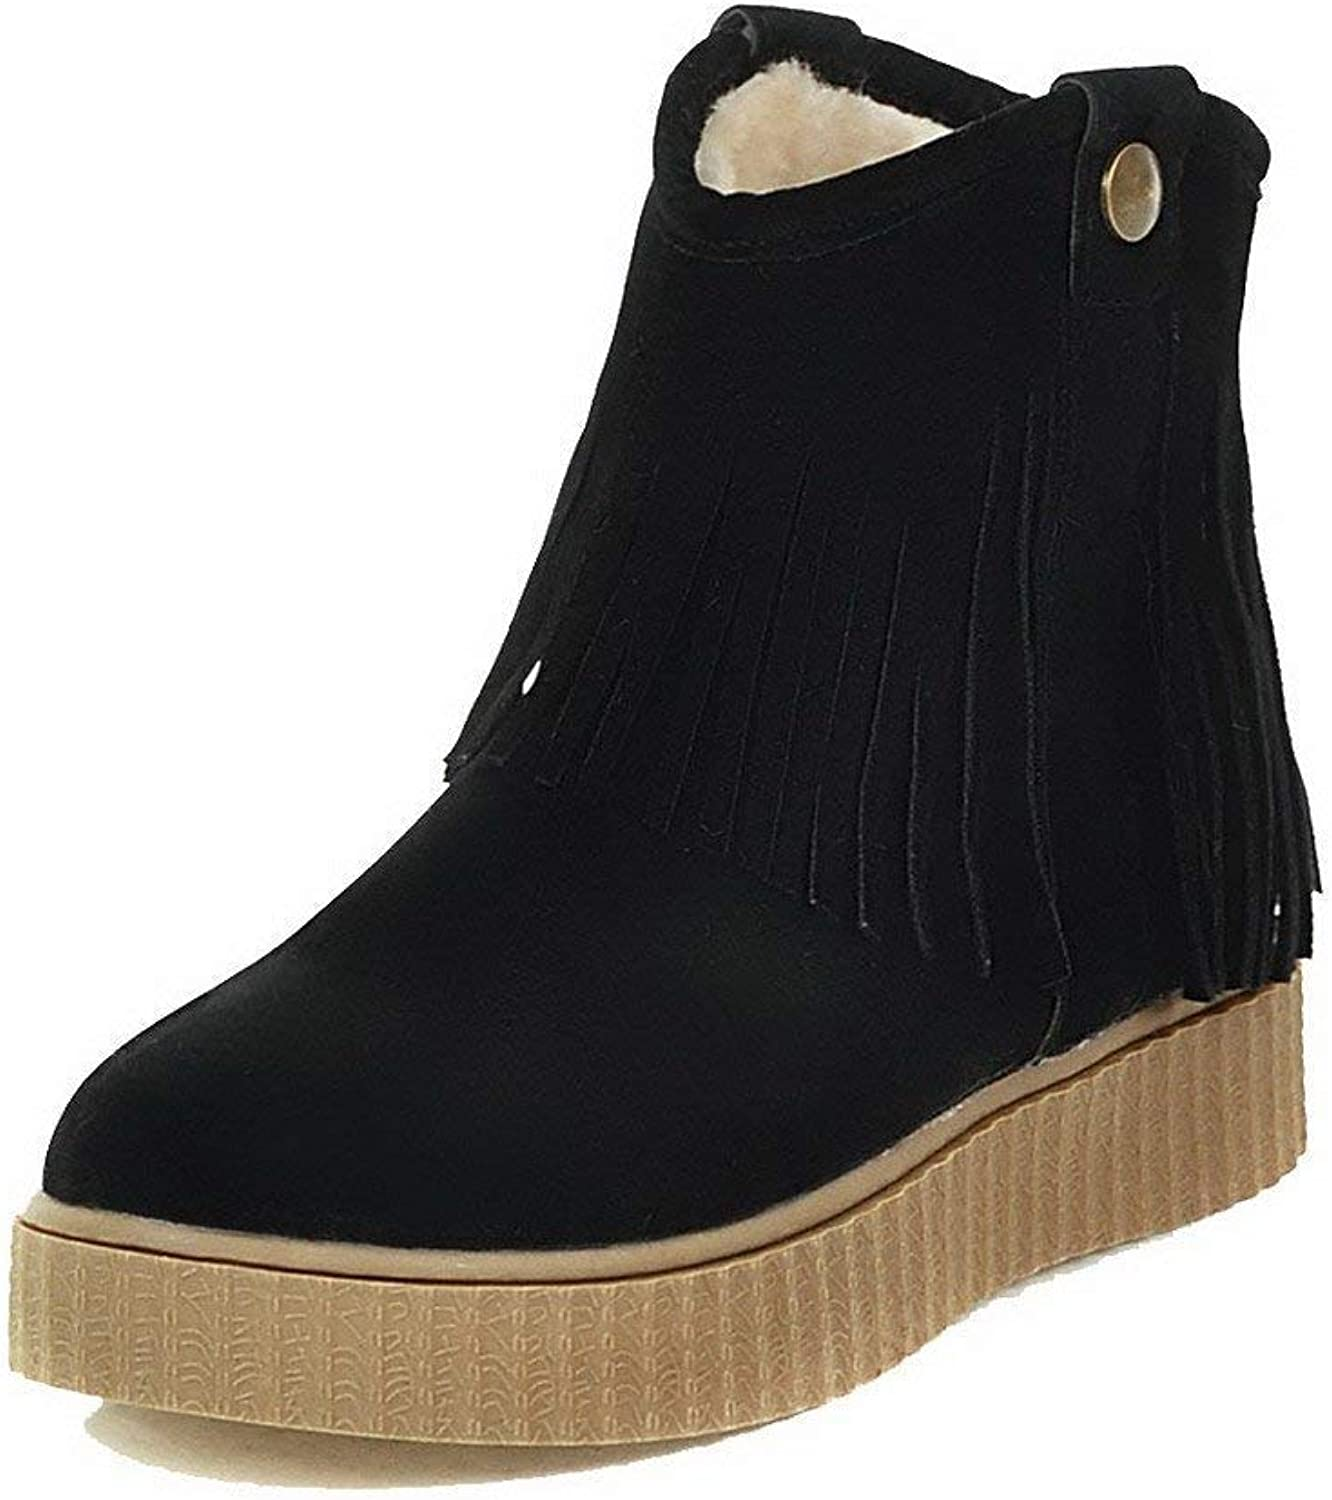 PRETTYHOMEL Women's Frosted Closed Round Toe Solid Low-Top Low-Heels Boots